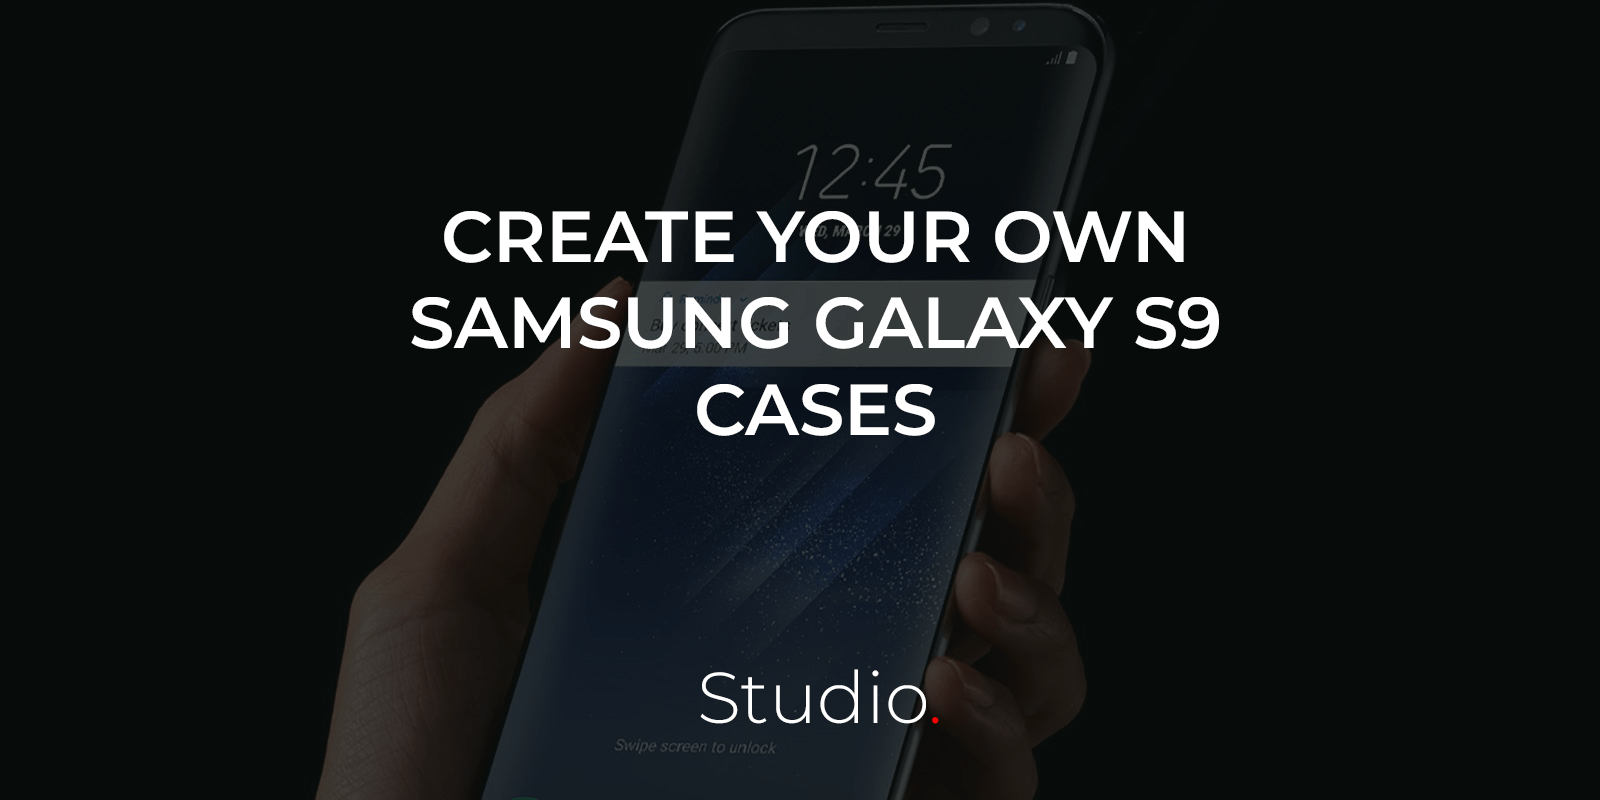 Design your own phone case design for the Samsung Galaxy S9